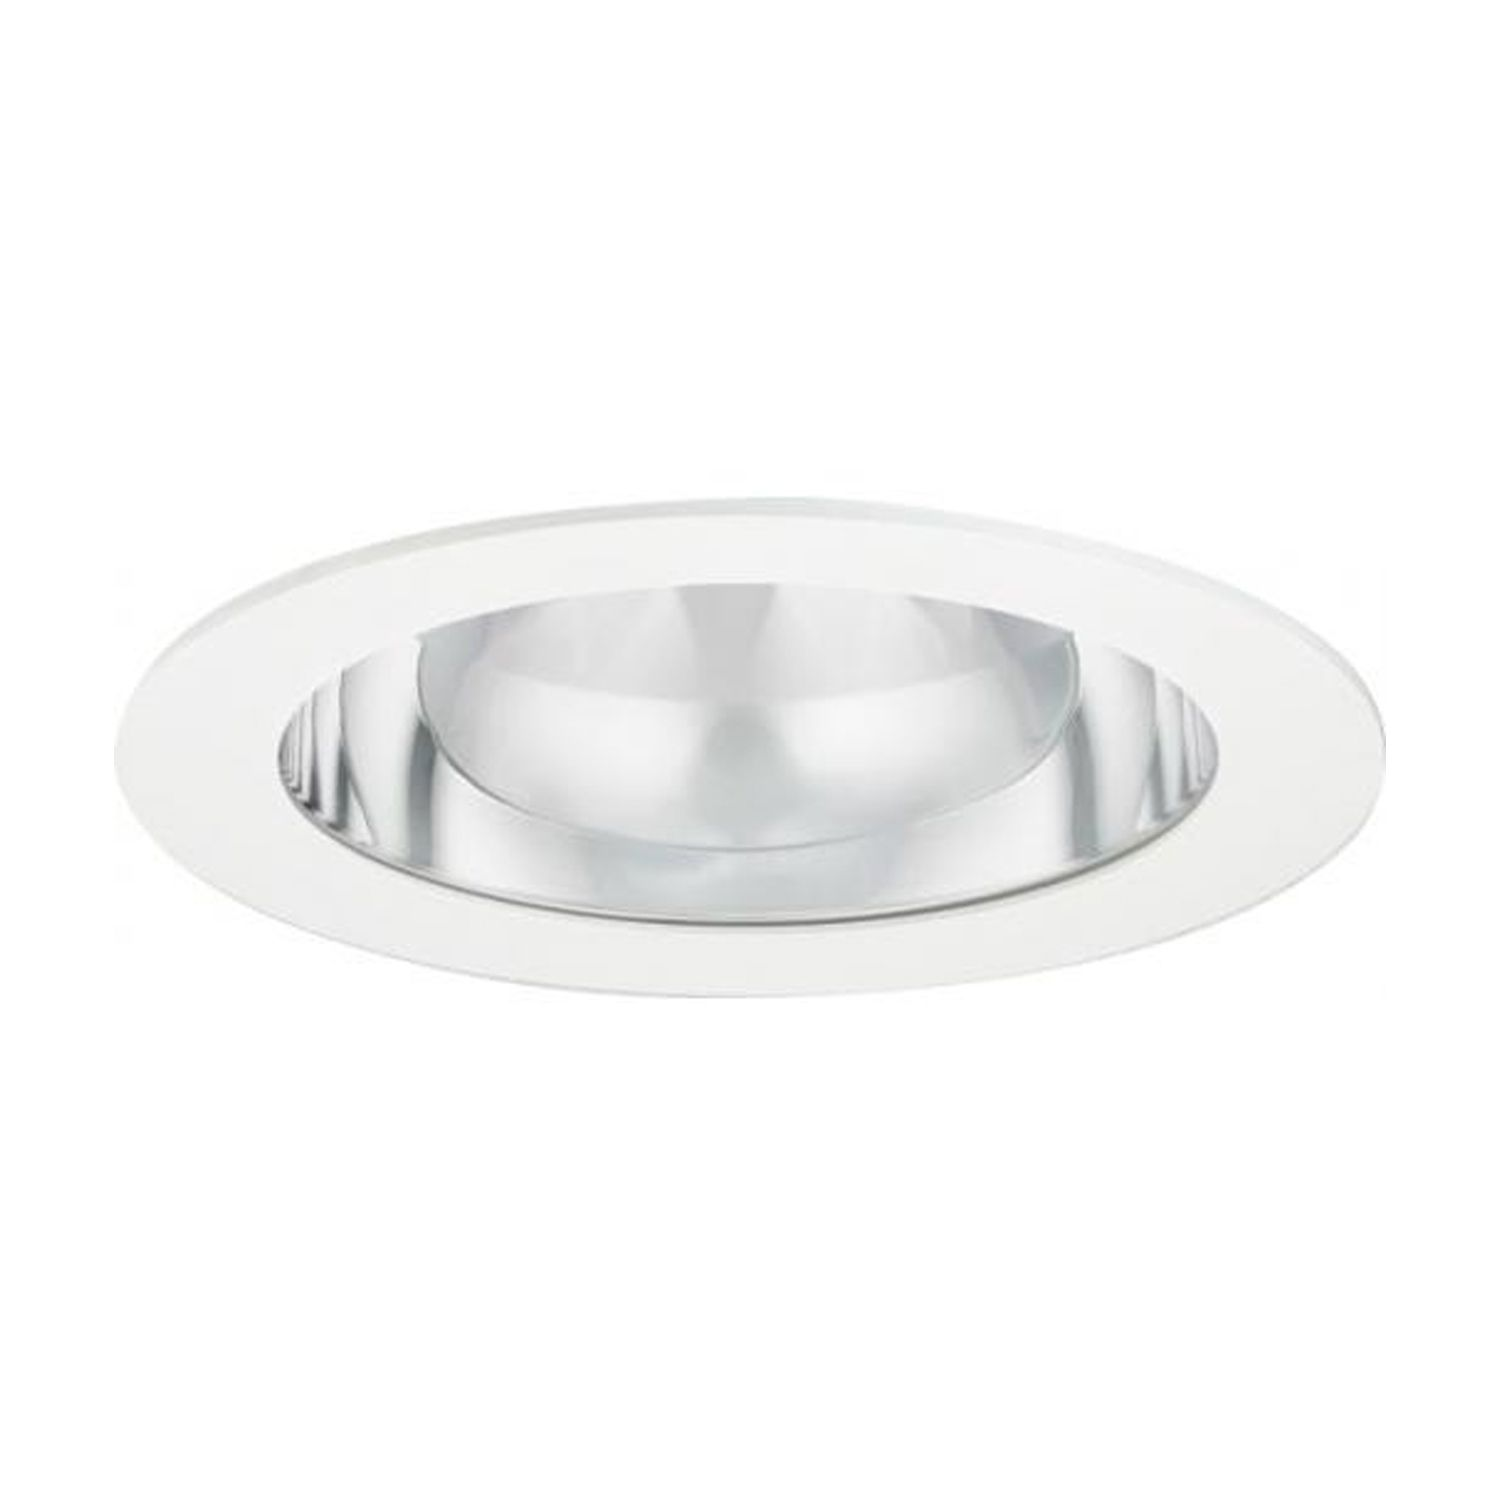 Philips GreenSpace2 DN460B 3000K 1100lm LED11S PSED-VLC-E C ELP3 WH P | Emergency 3H - Dali Dimmable